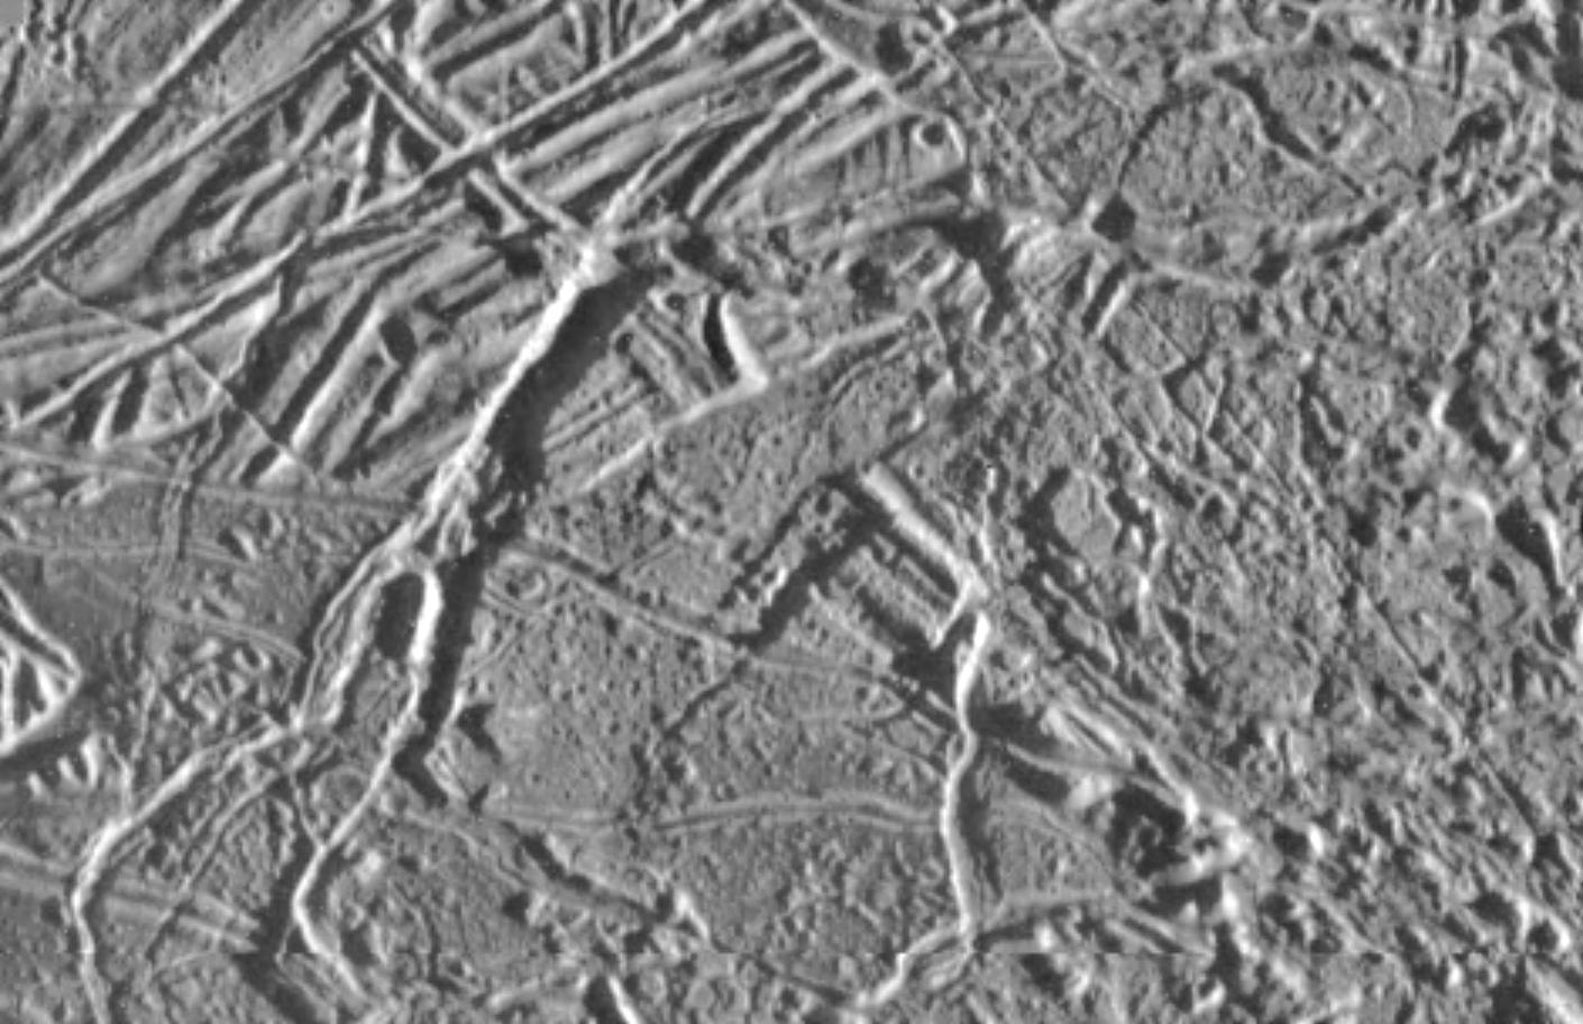 Jupiter's moon, Europa, is seen in this image taken by NASA's Galileo Orbiter. The smallest visible feature is about the size of a football field.